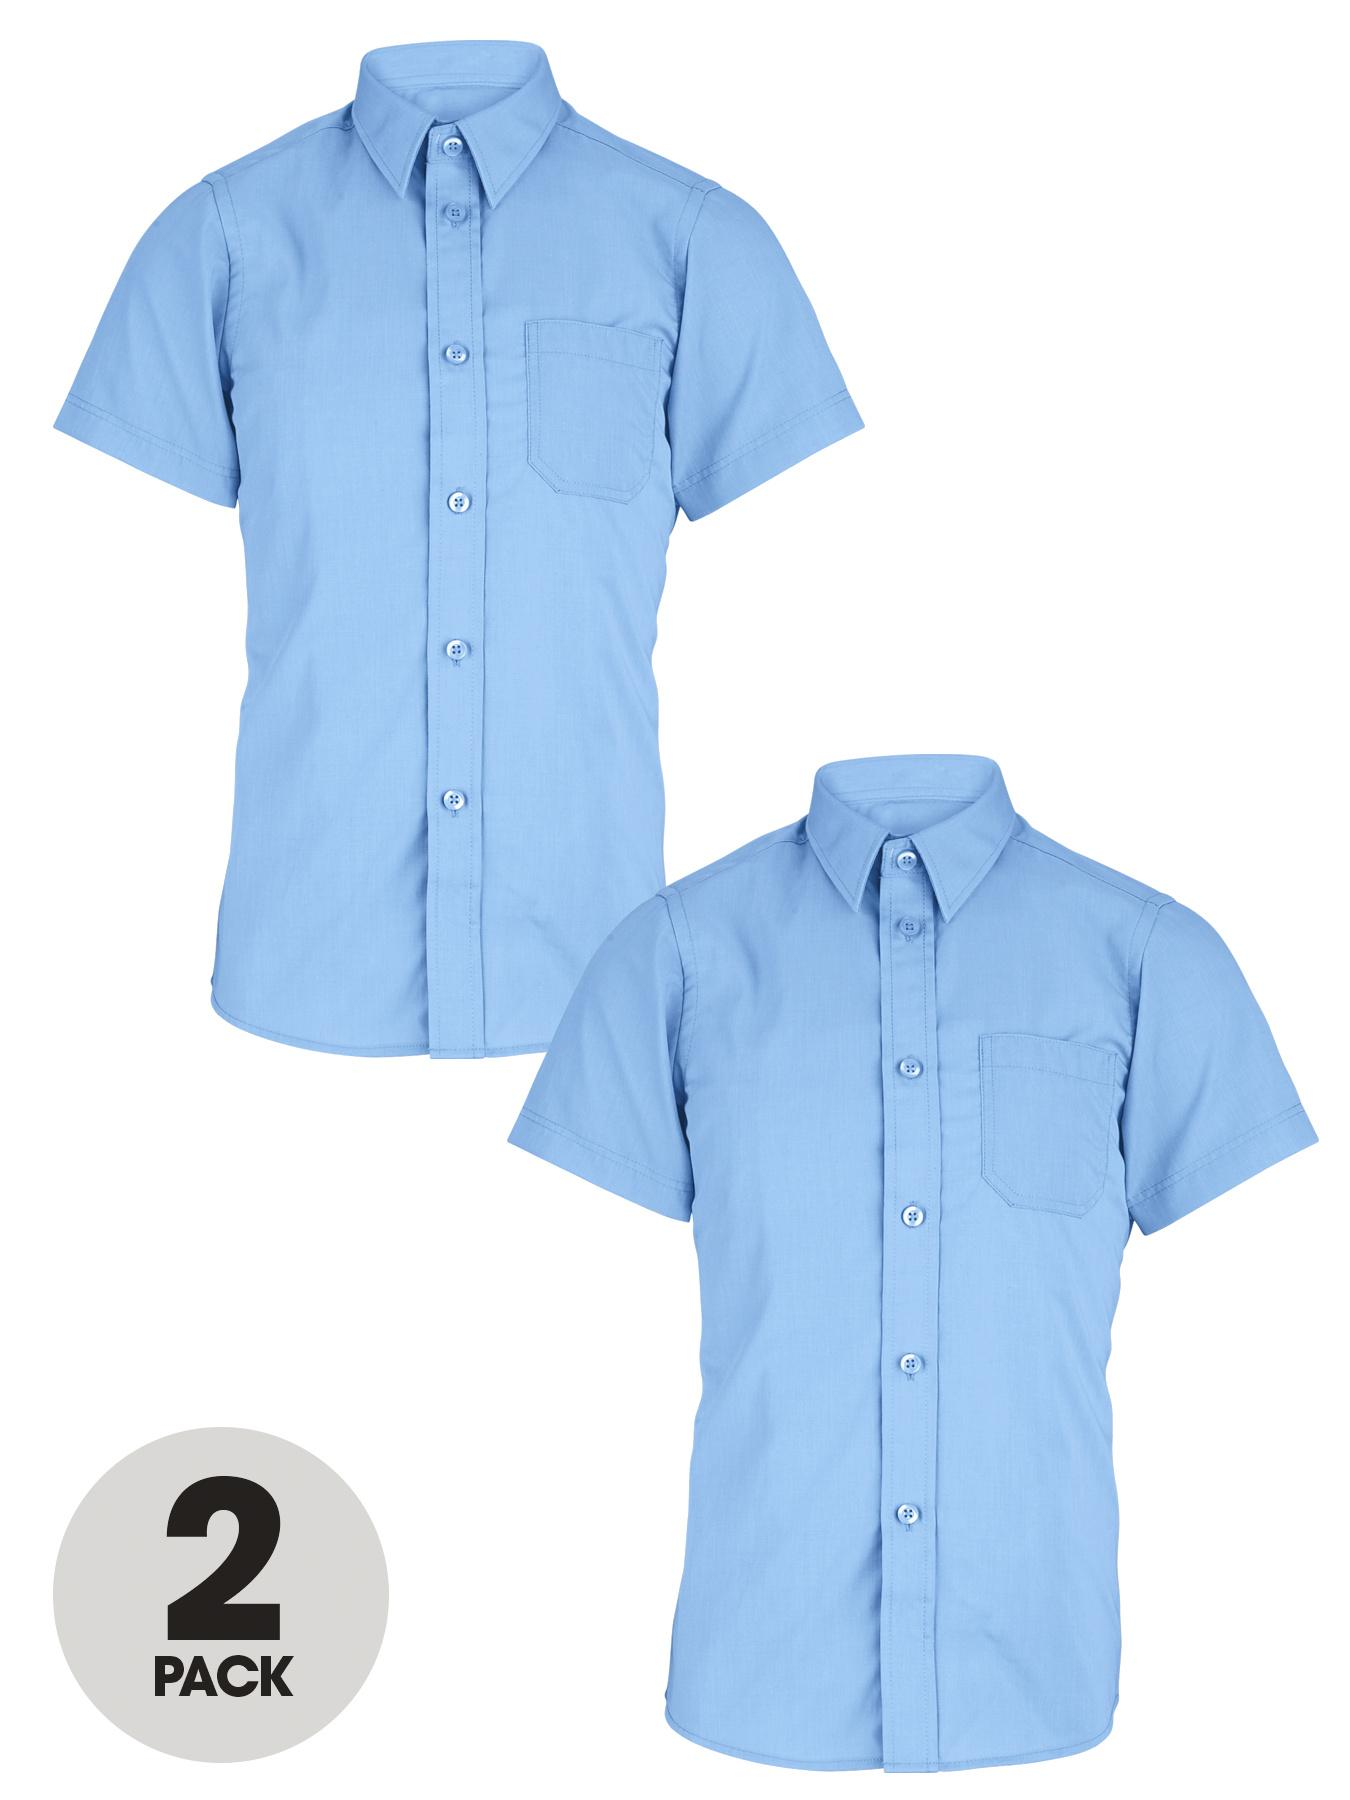 Boys Short Sleeve Shirts (2 Pack), White,Blue at Littlewoods